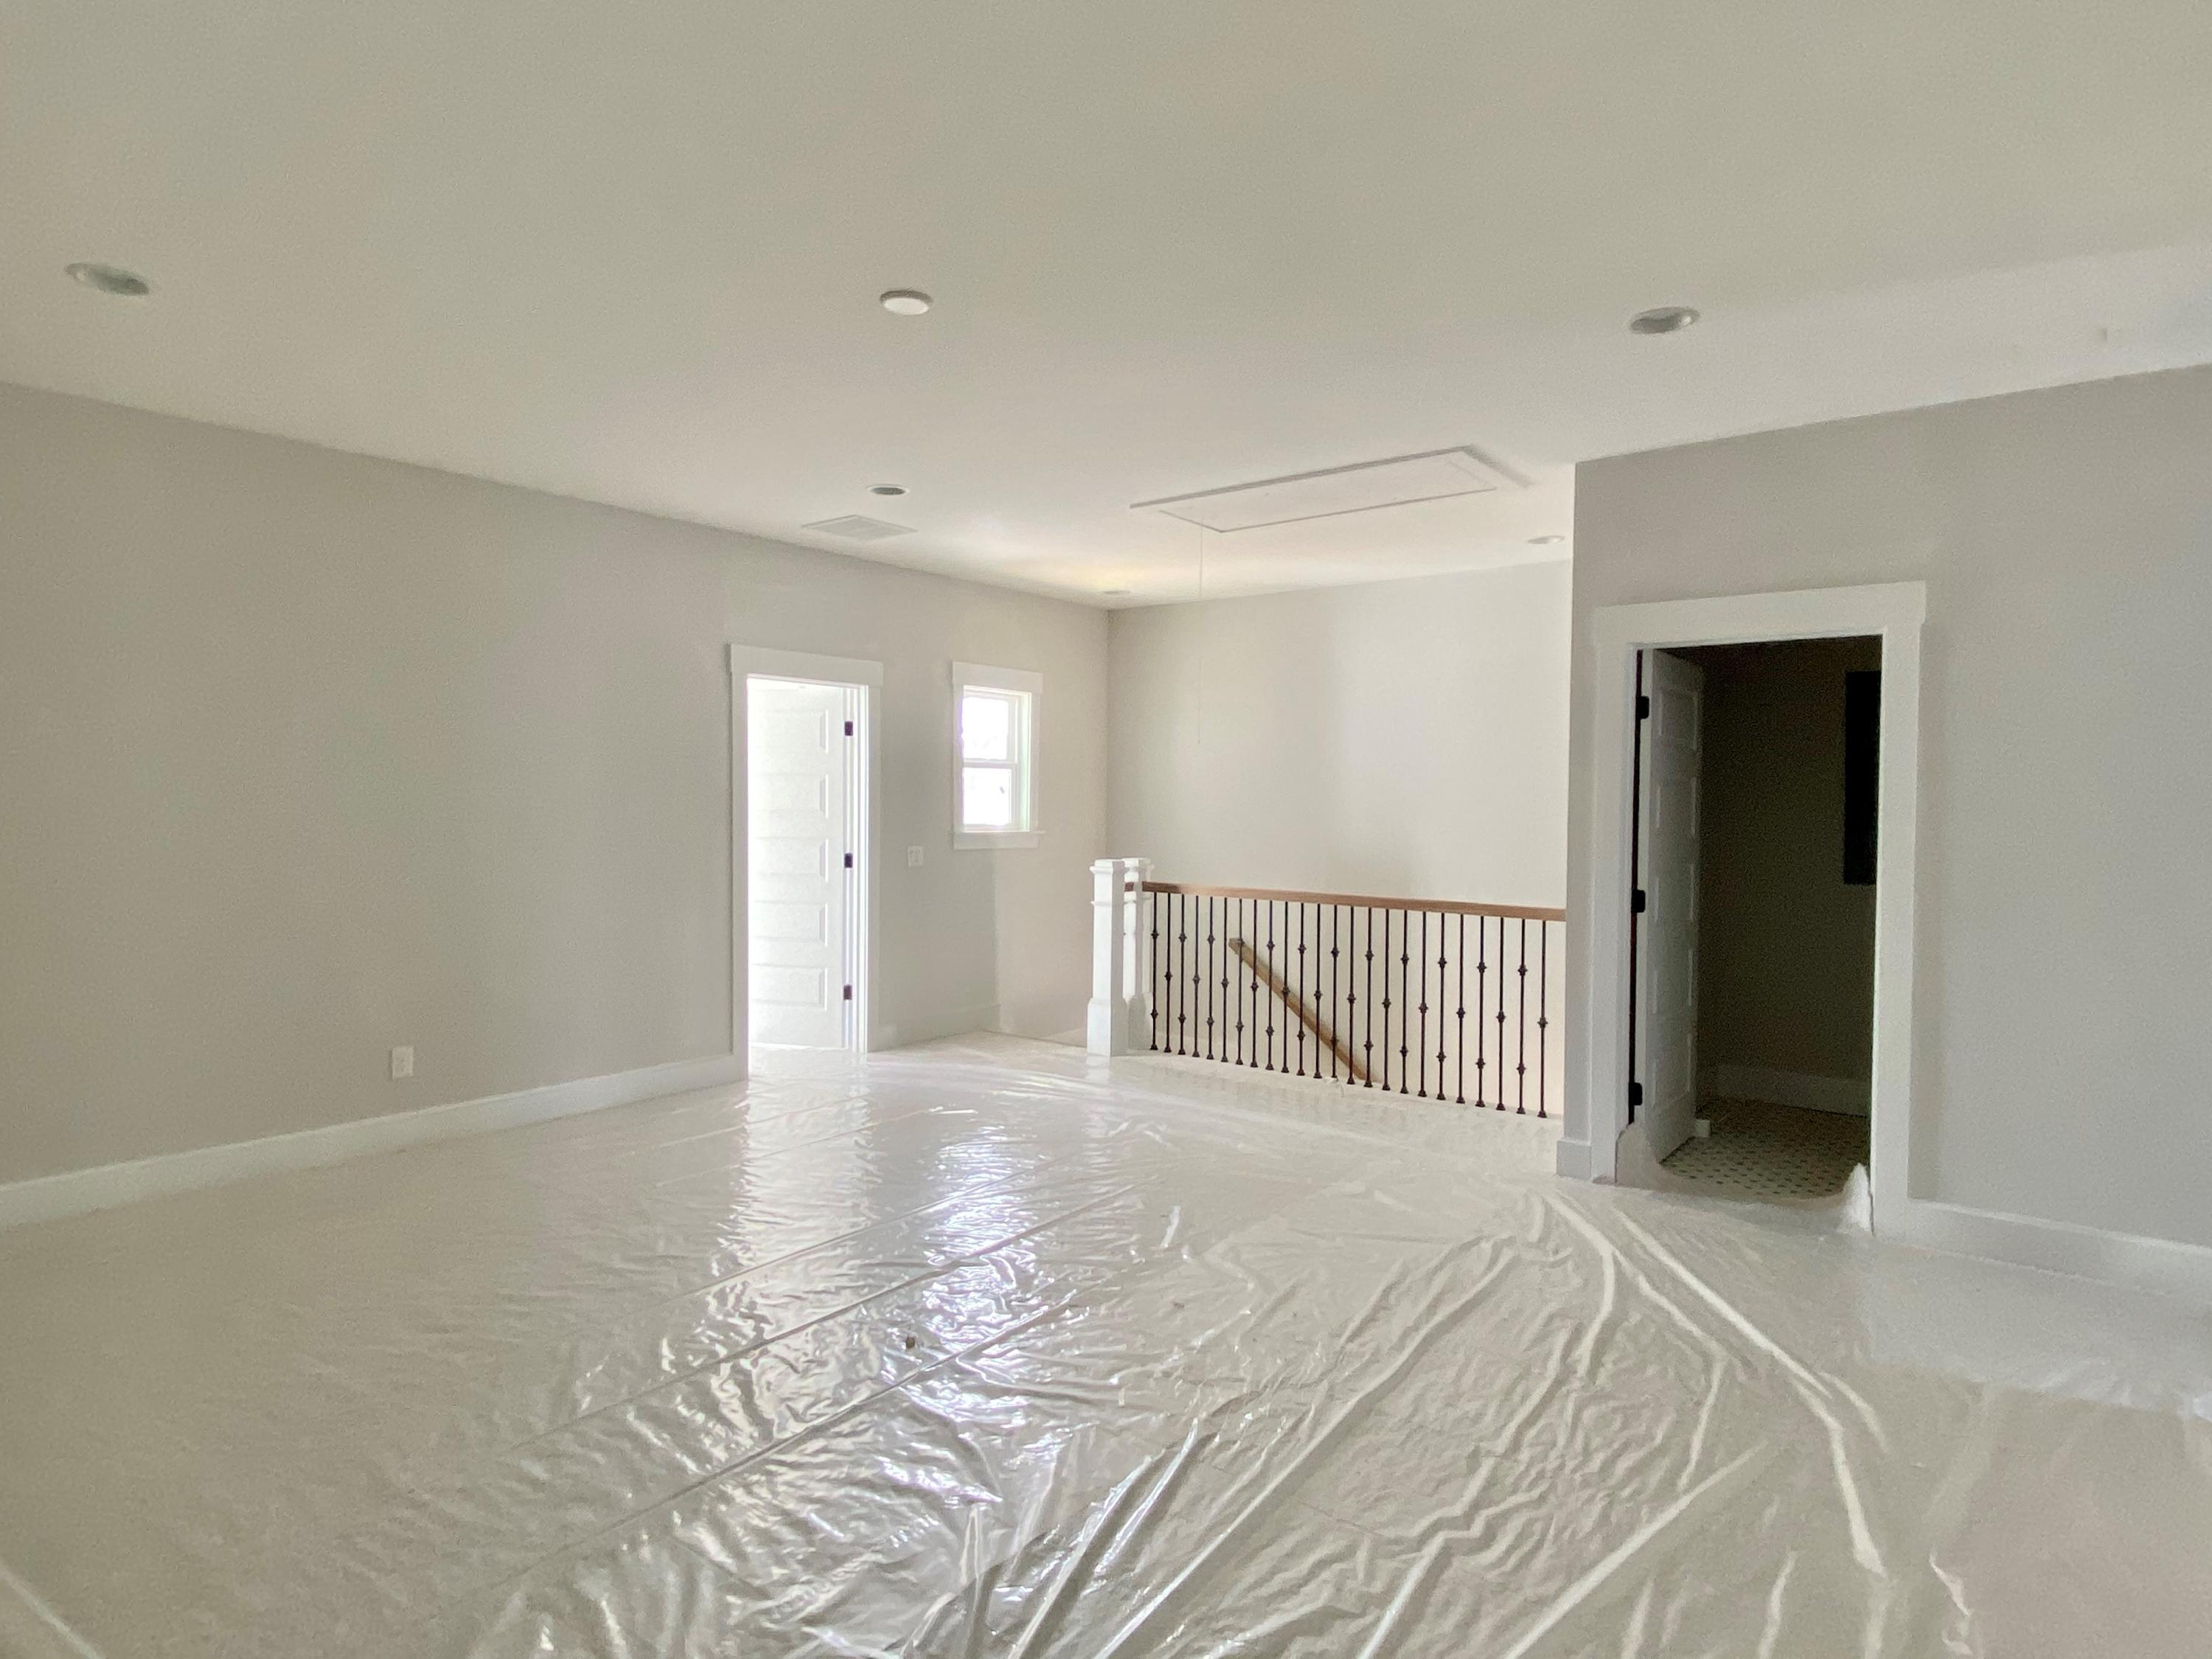 Stratton by the Sound Homes For Sale - 1490 Menhaden, Mount Pleasant, SC - 0